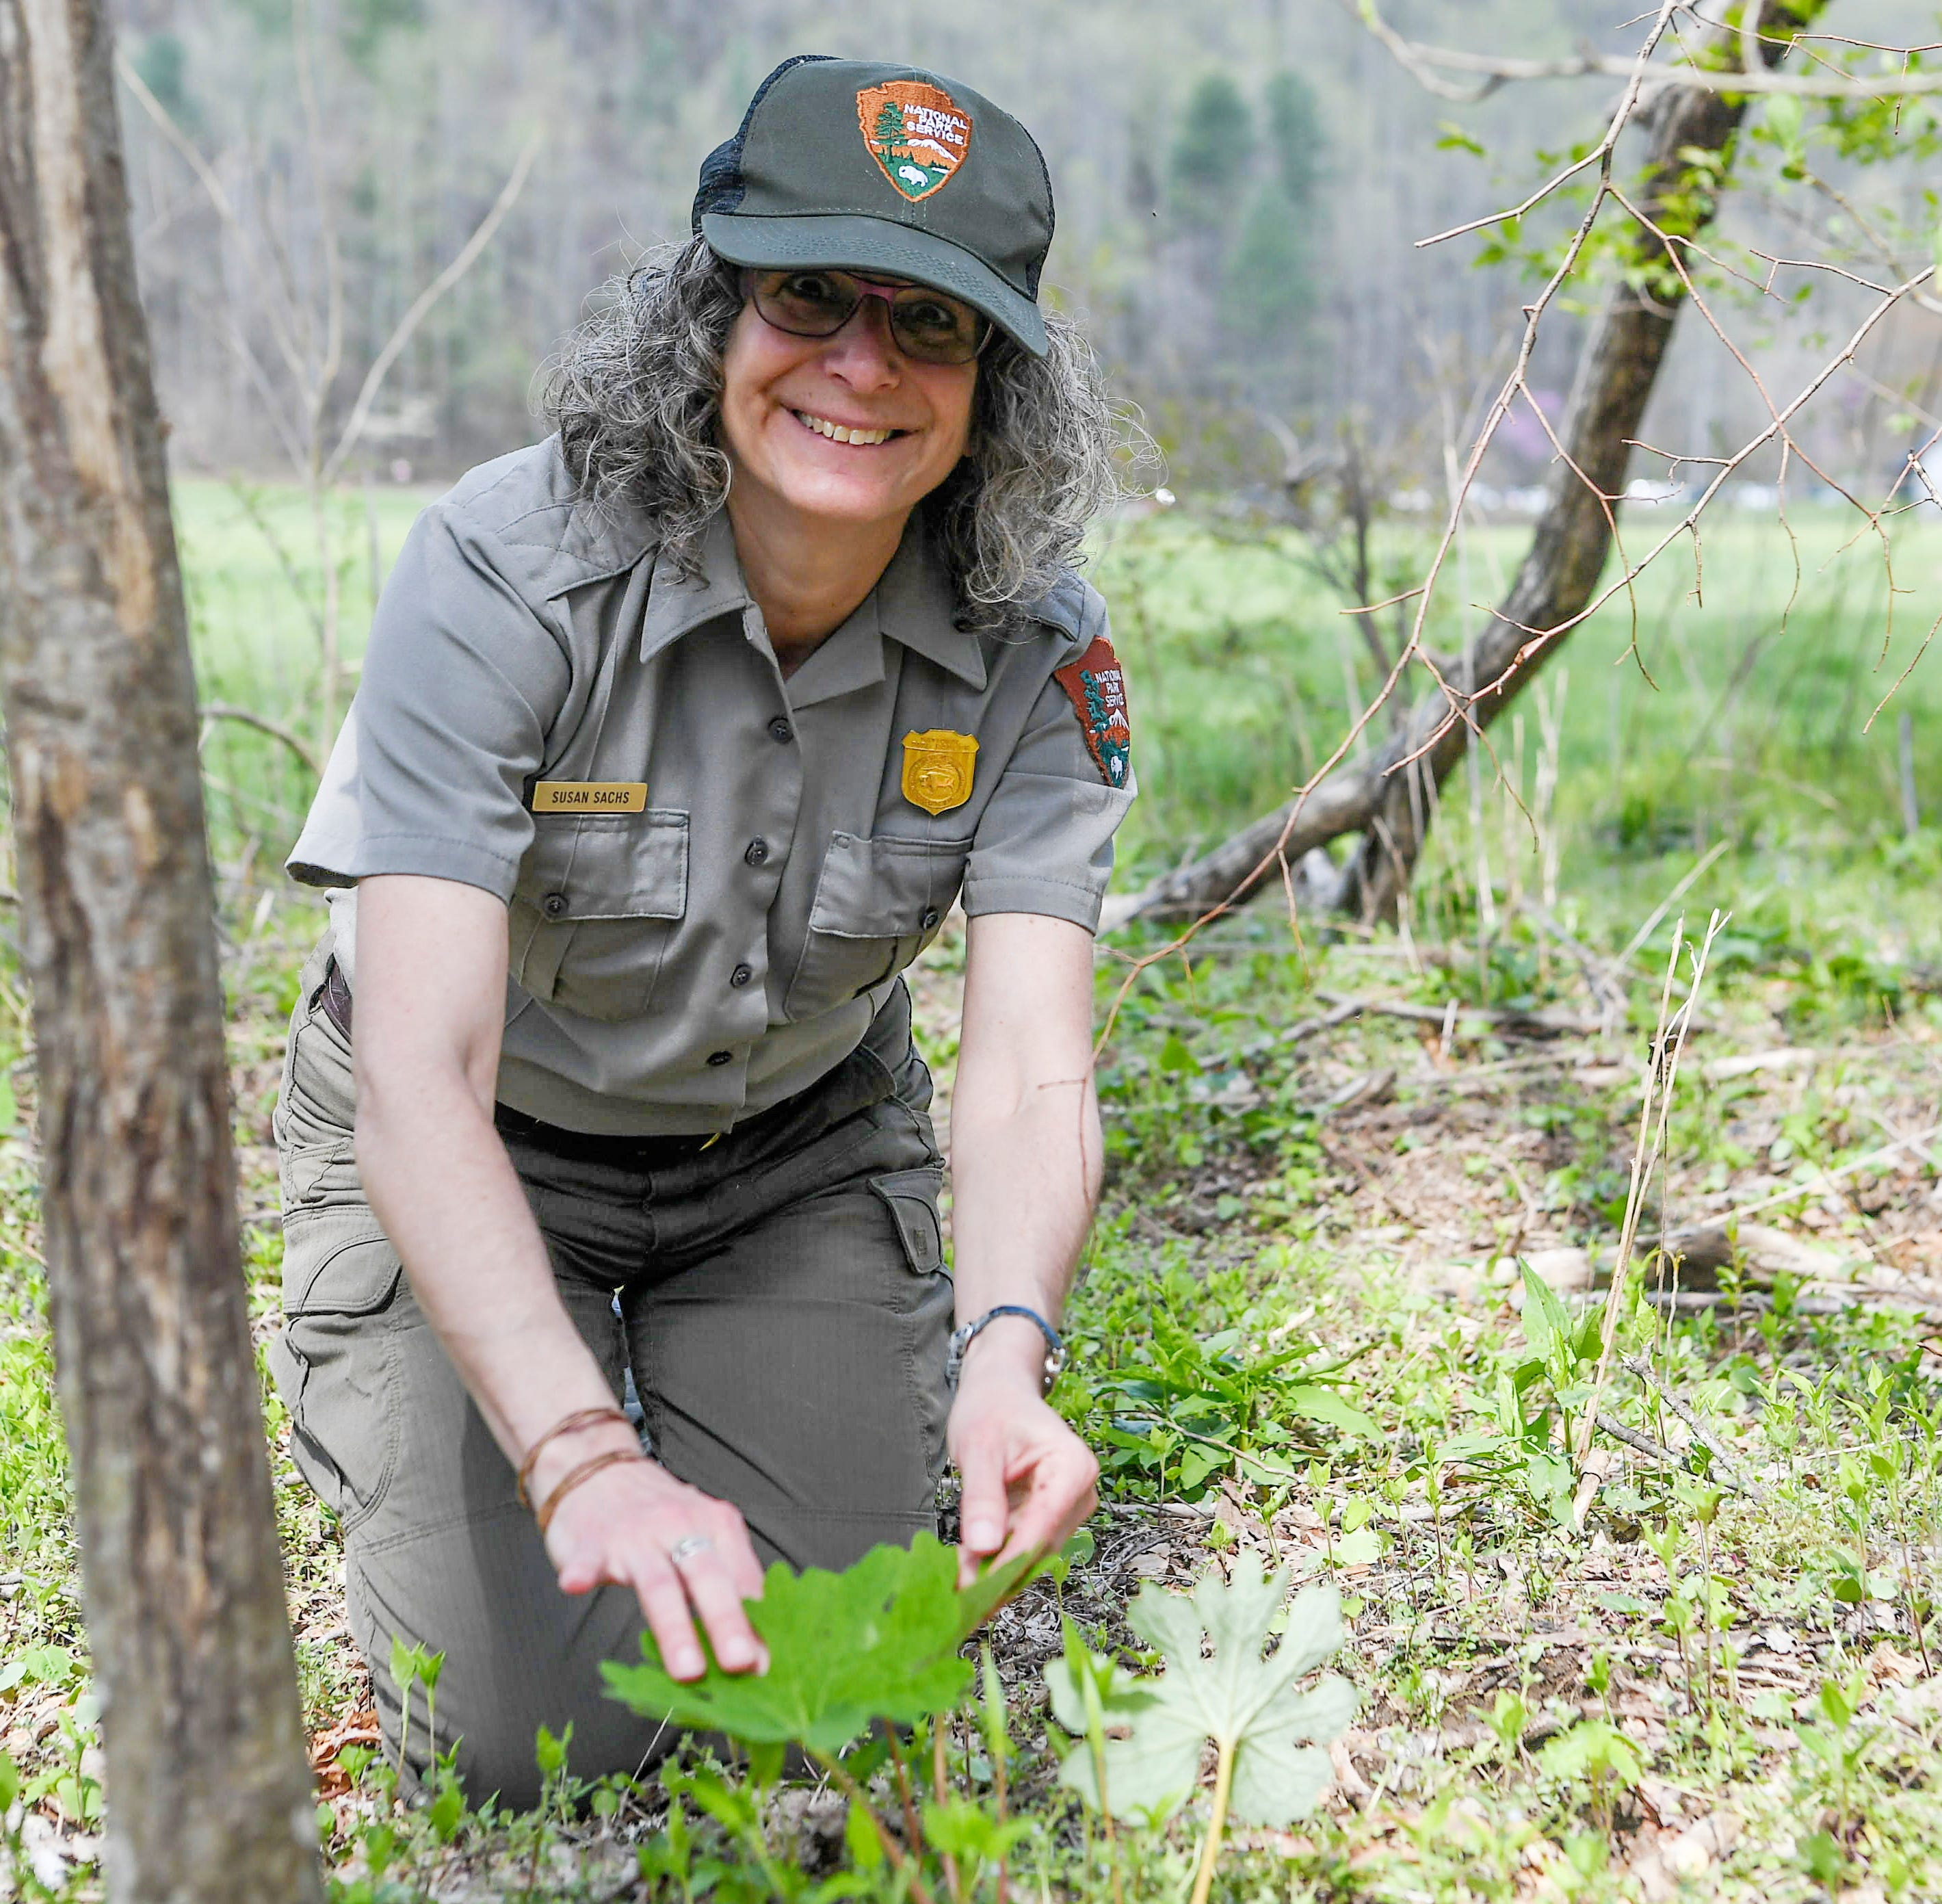 Great Smokies education ranger's 'remarkable passion' wins her national award